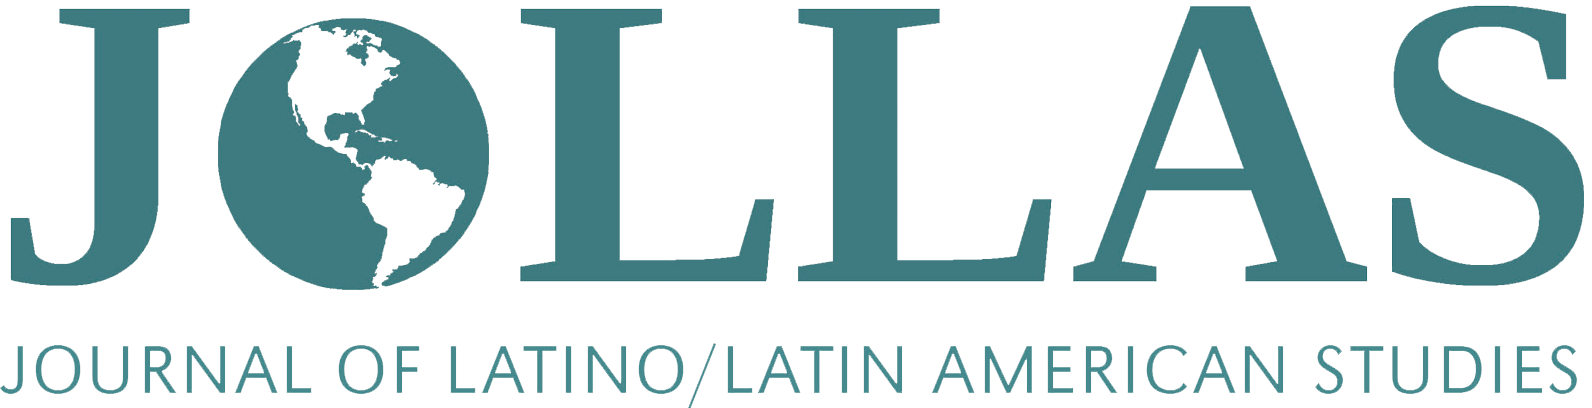 Journal of Latino/Latin American Studies